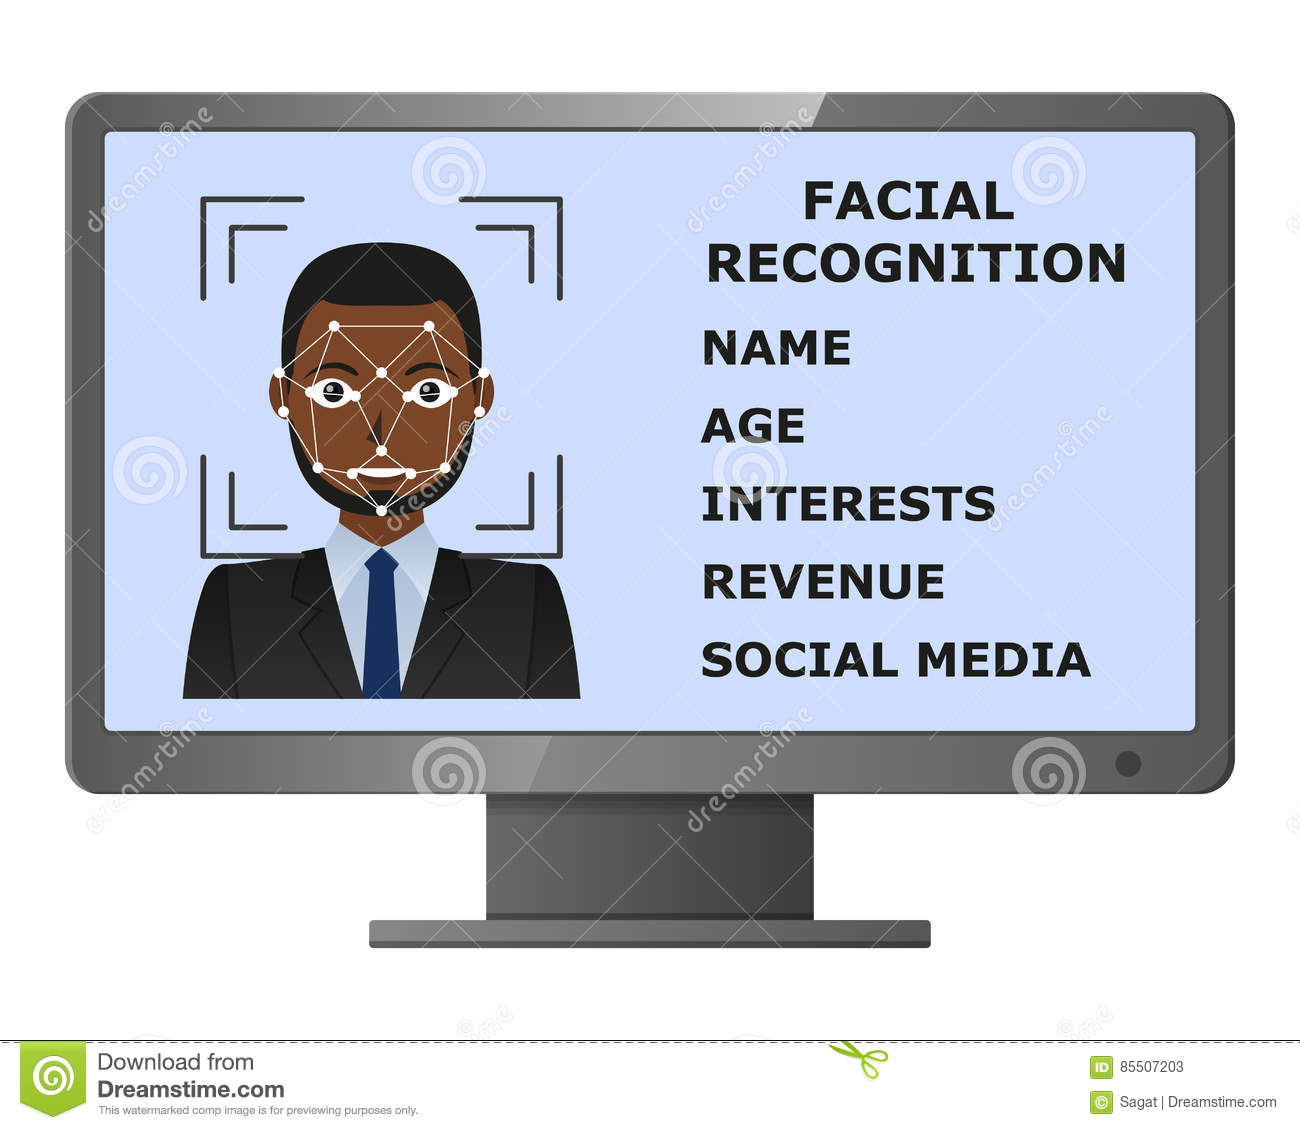 Download face recognition software for windows 7.